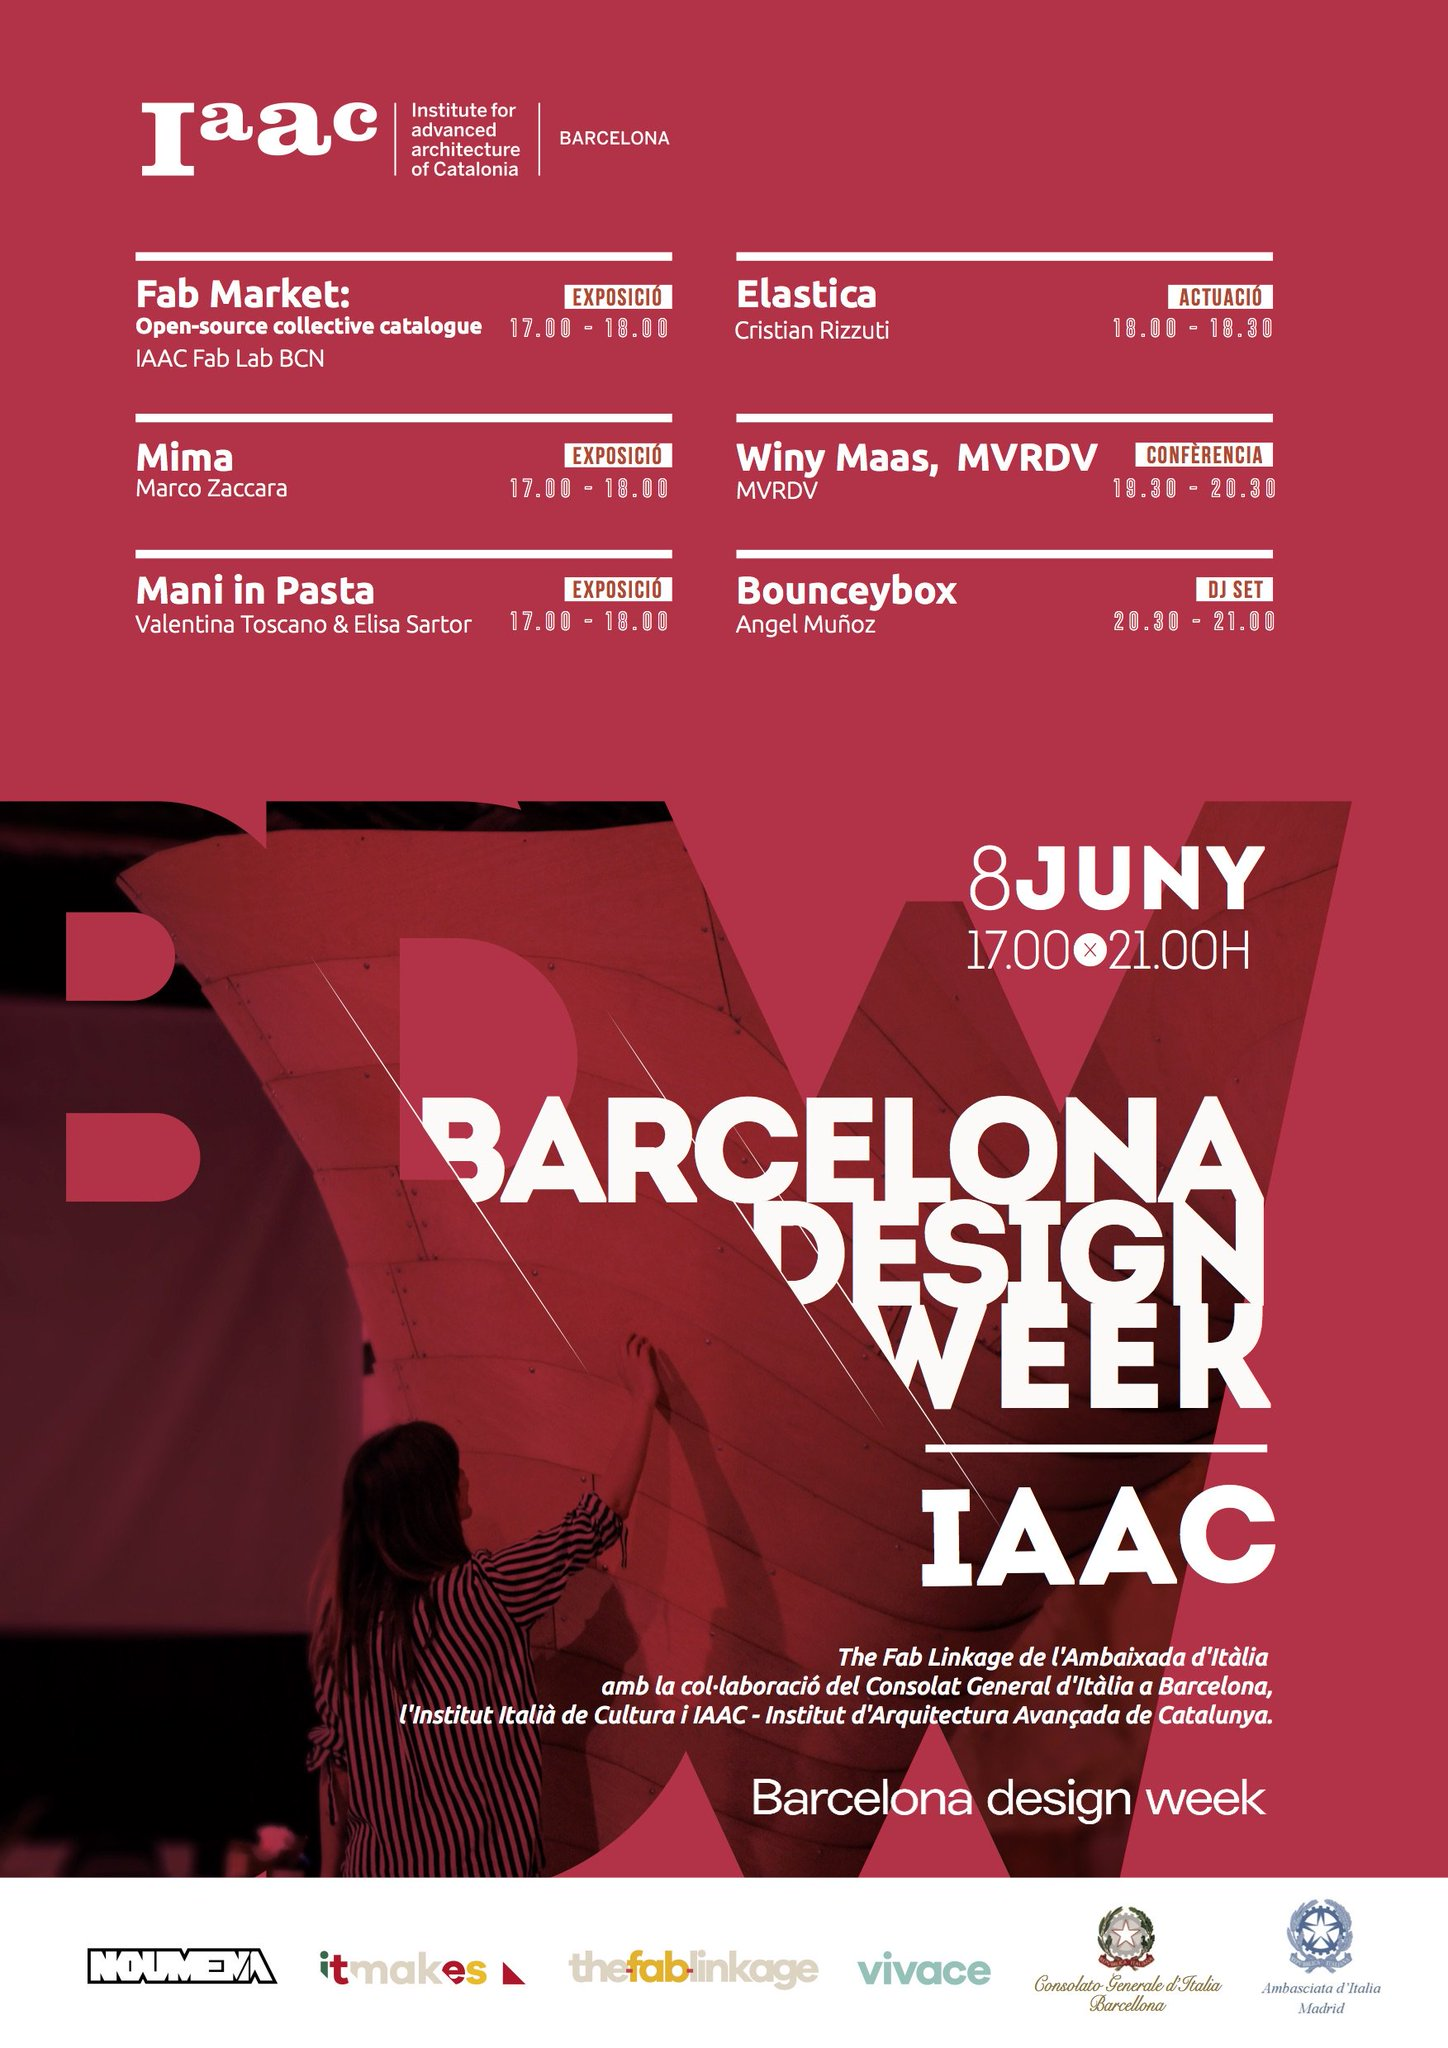 Barcelona design week 2017 transforming society bounceybox for Design week 2017